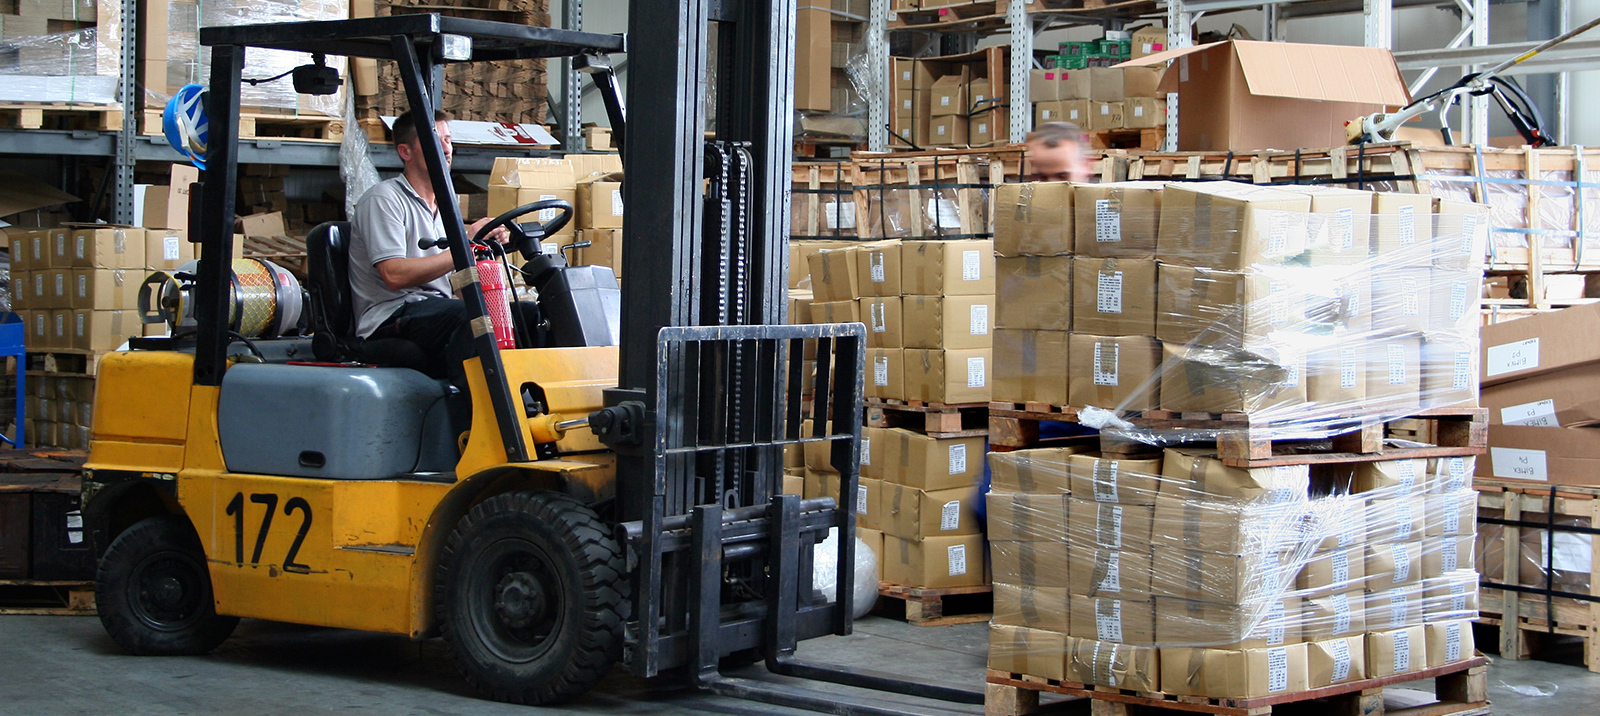 When Should You Repair or Replace Your Forklift?